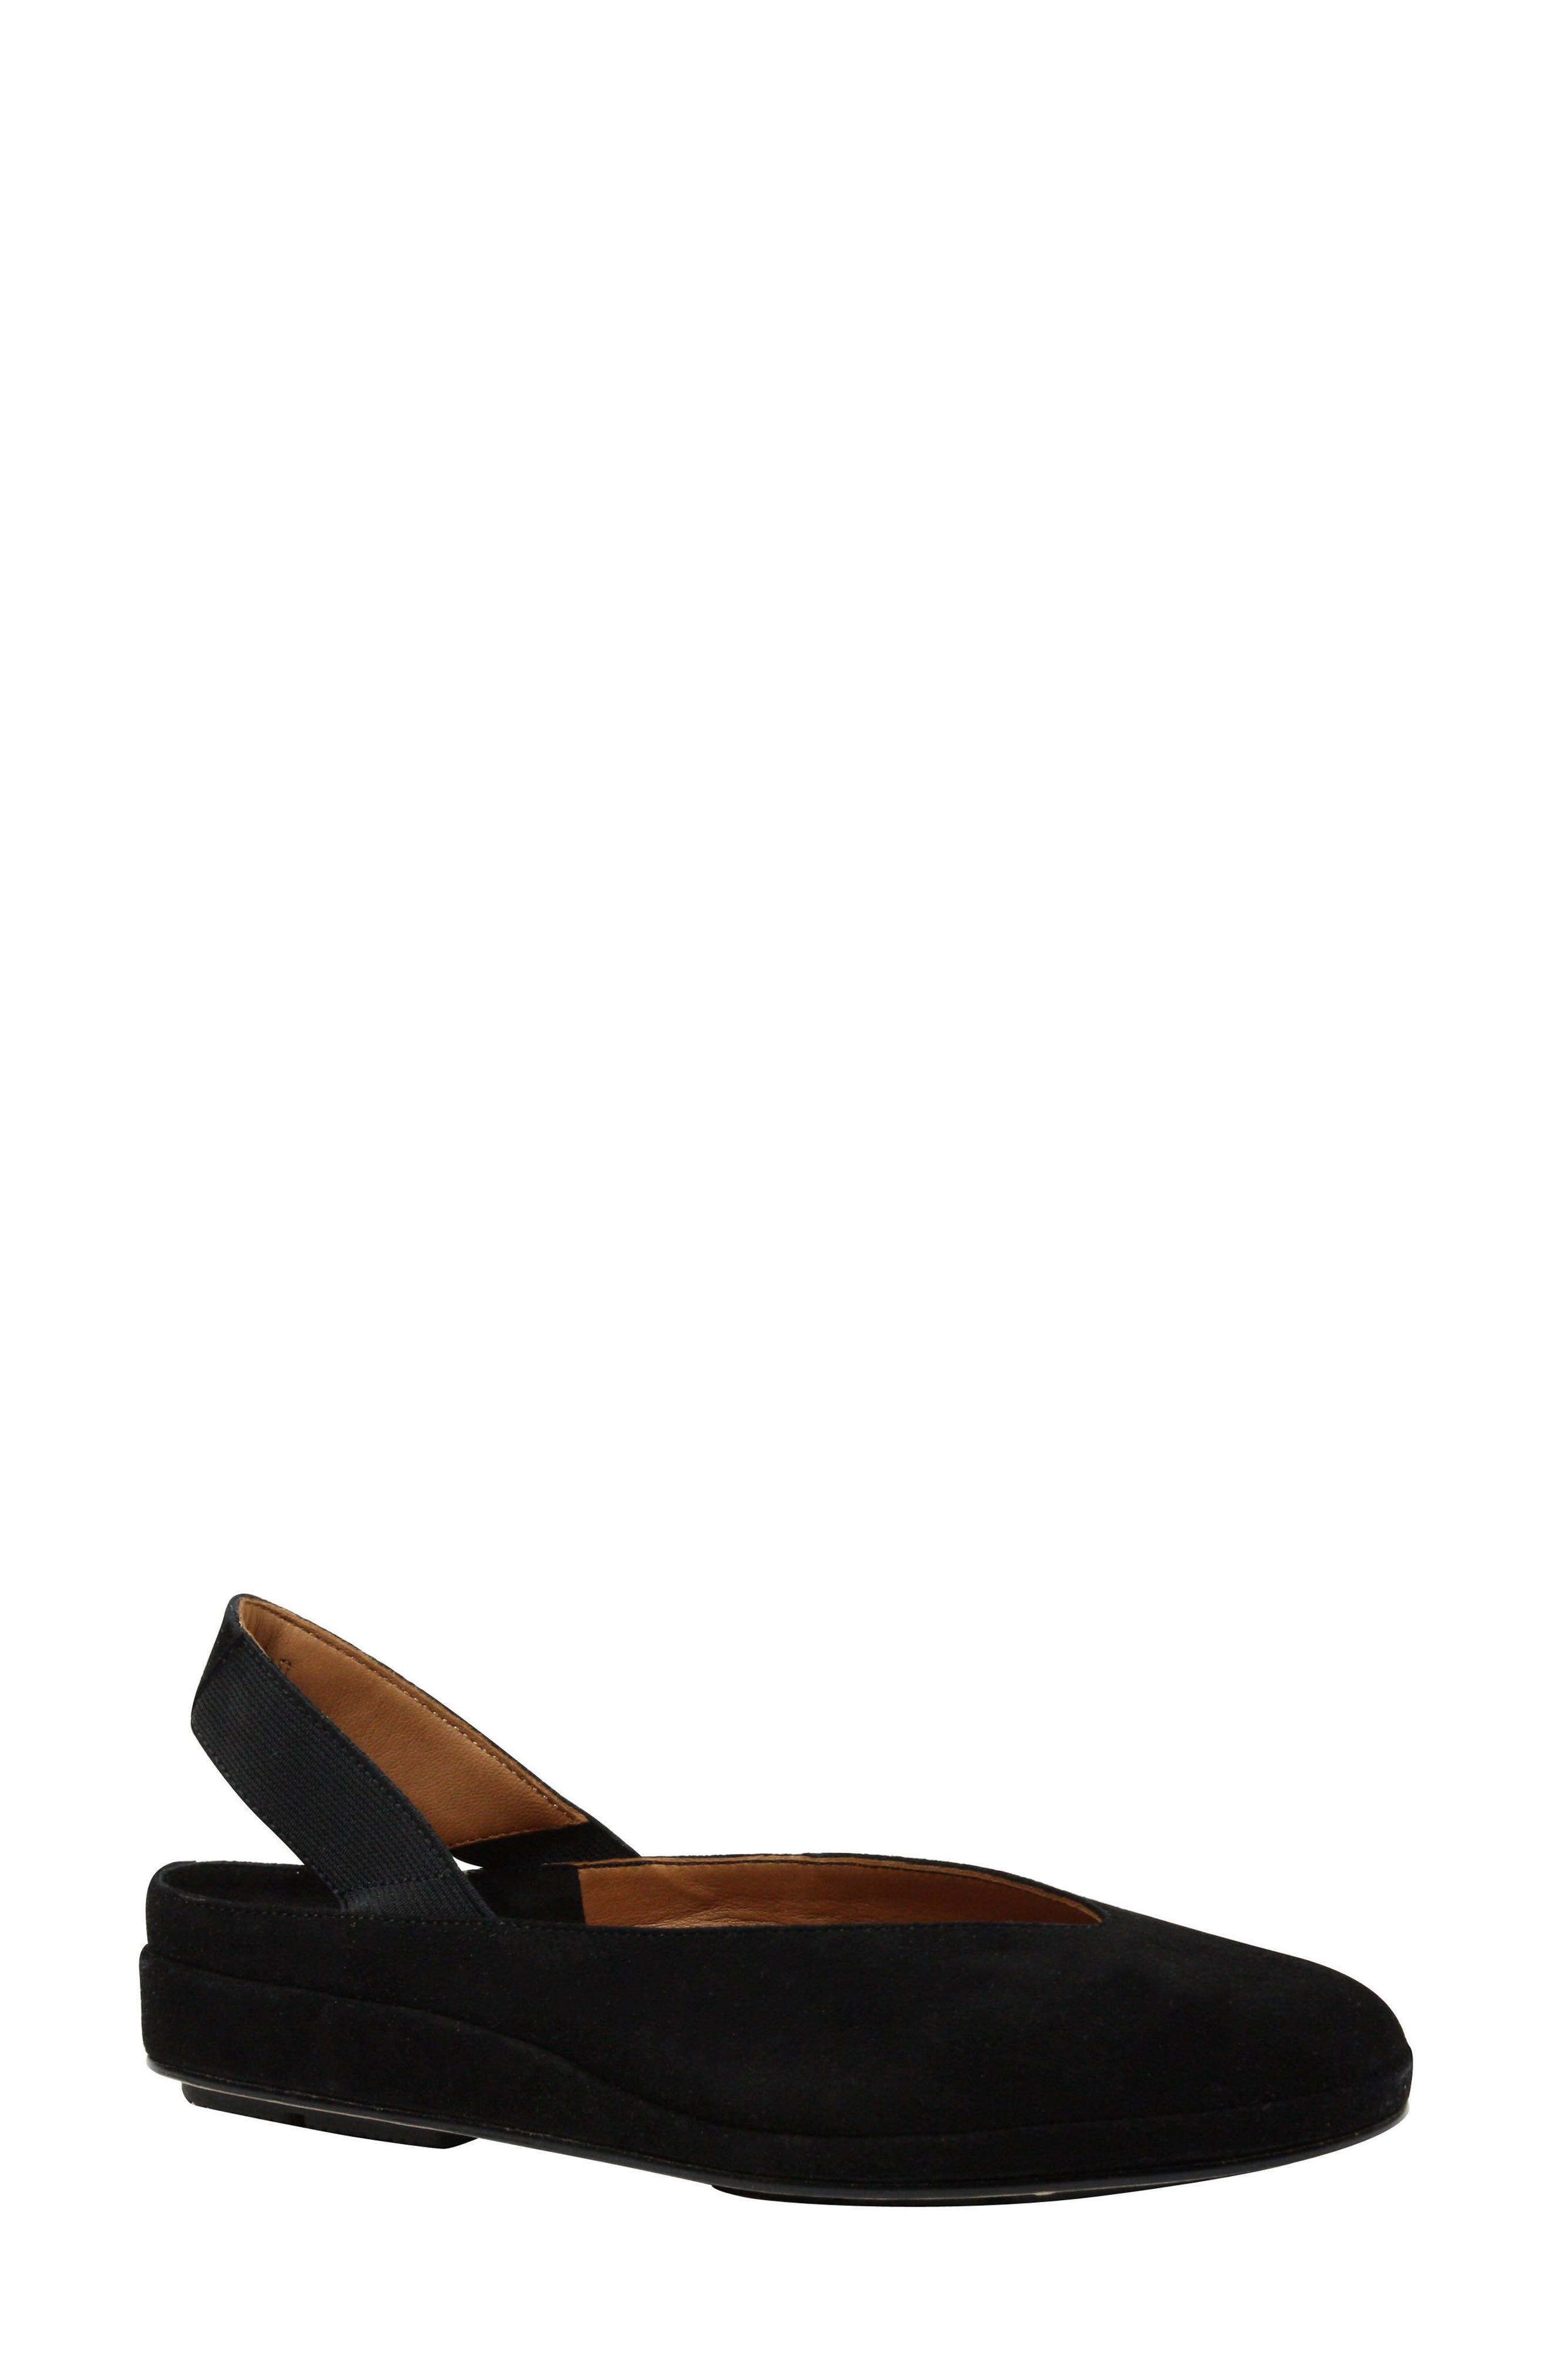 L'AMOUR DES PIEDS, 'Cypris' Slingback Wedge, Main thumbnail 1, color, BLACK SUEDE